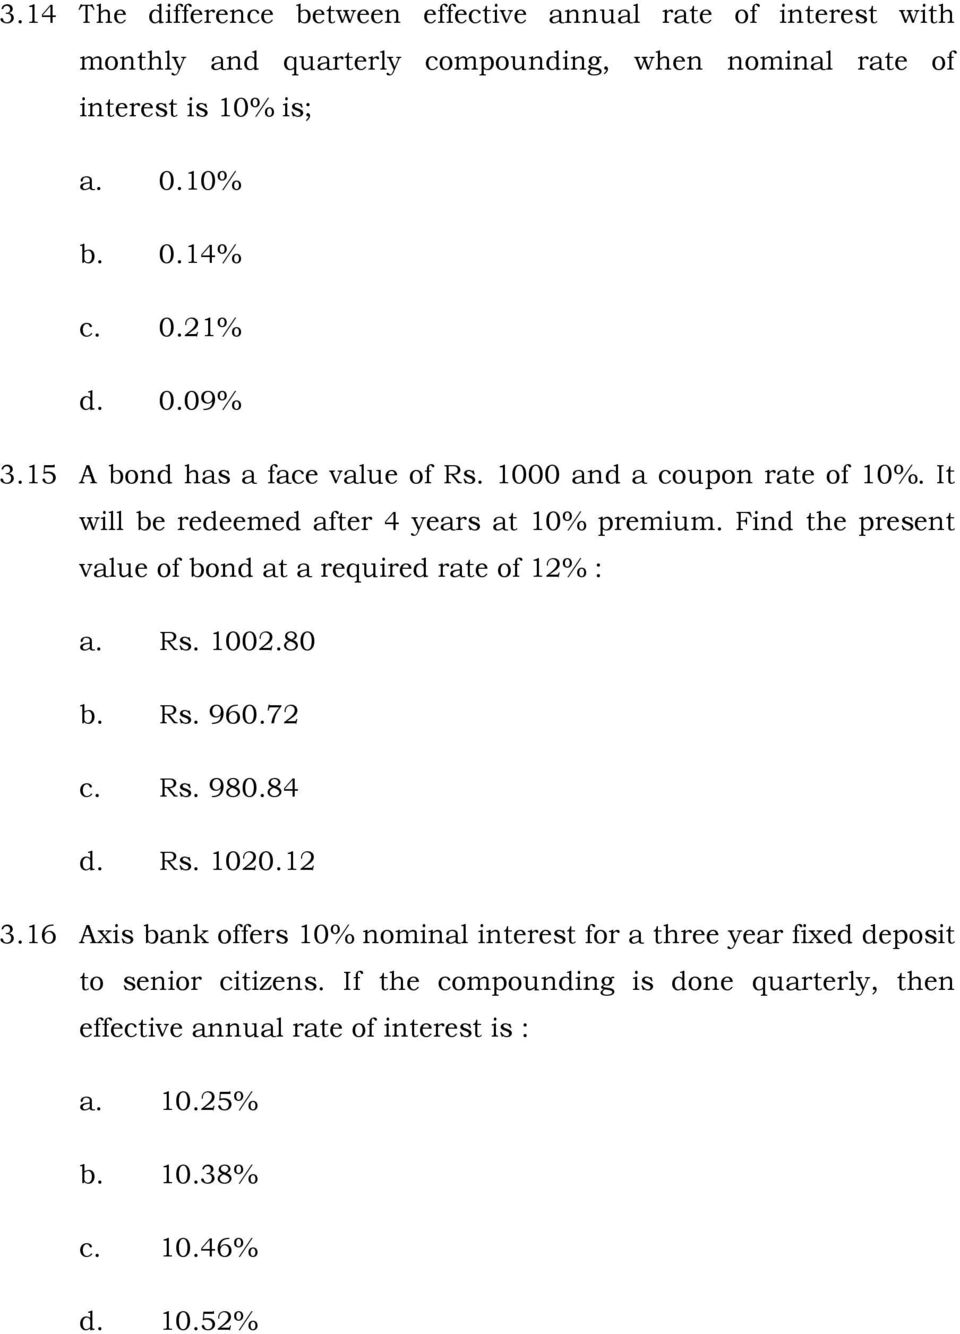 Find the present value of bond at a required rate of 12% : a. Rs. 1002.80 b. Rs. 960.72 c. Rs. 980.84 d. Rs. 1020.12 3.